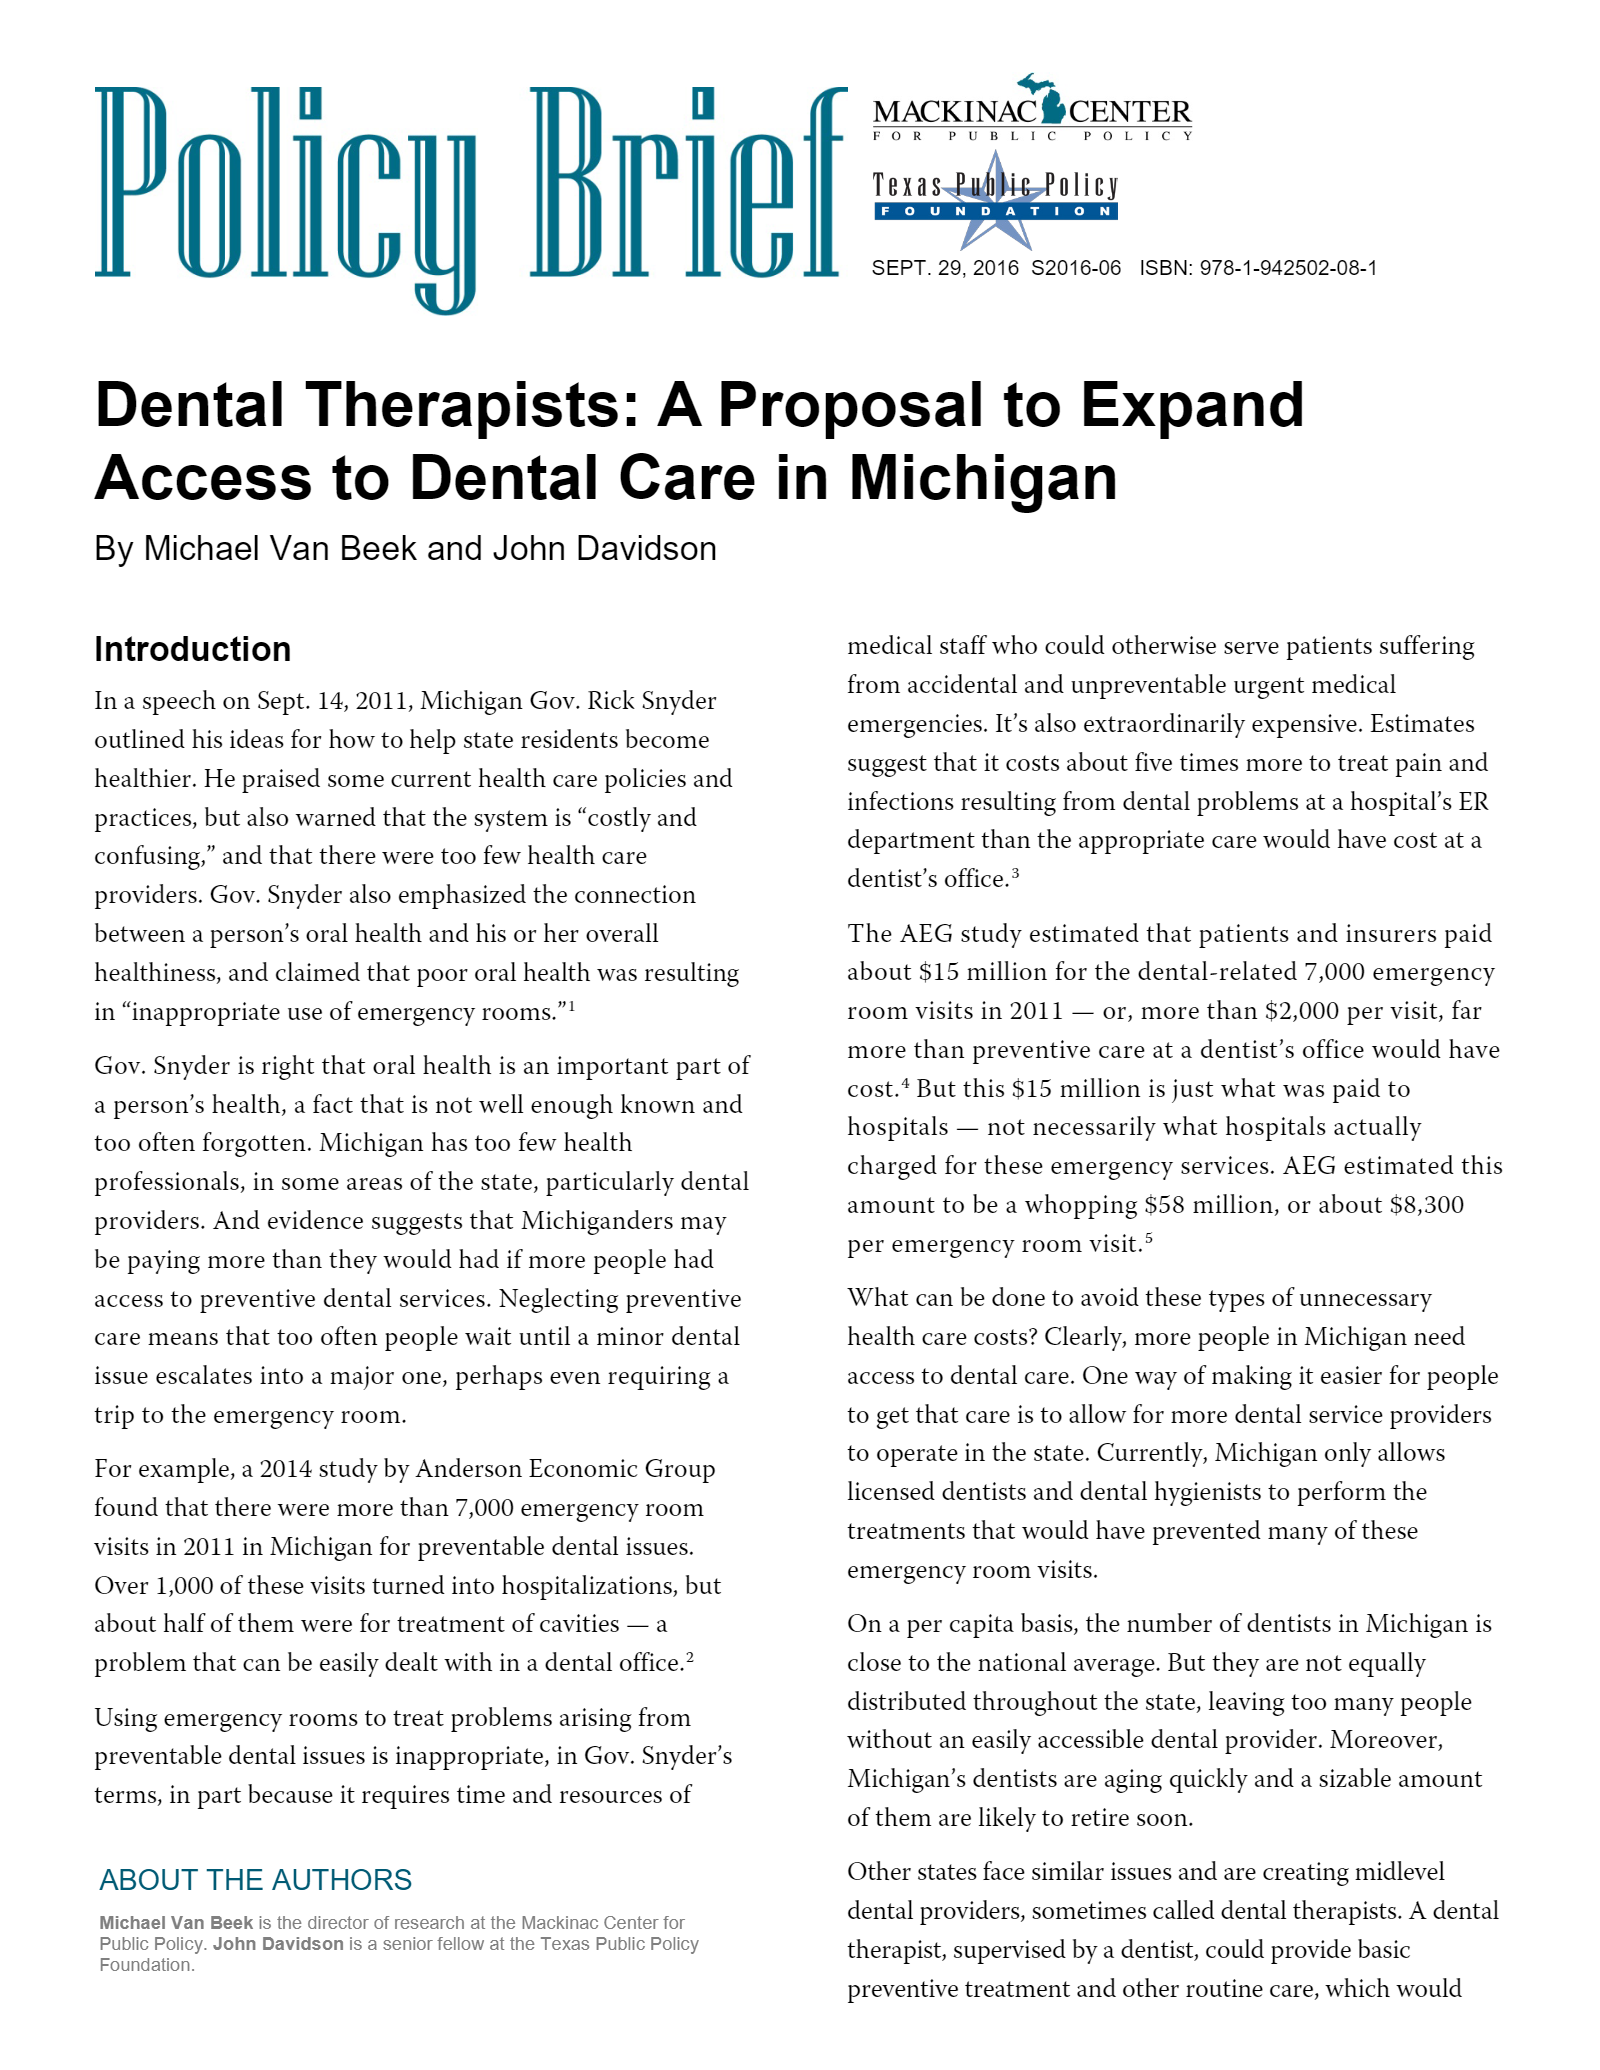 Dental Therapists: A Proposal to Expand Access to Dental Care in